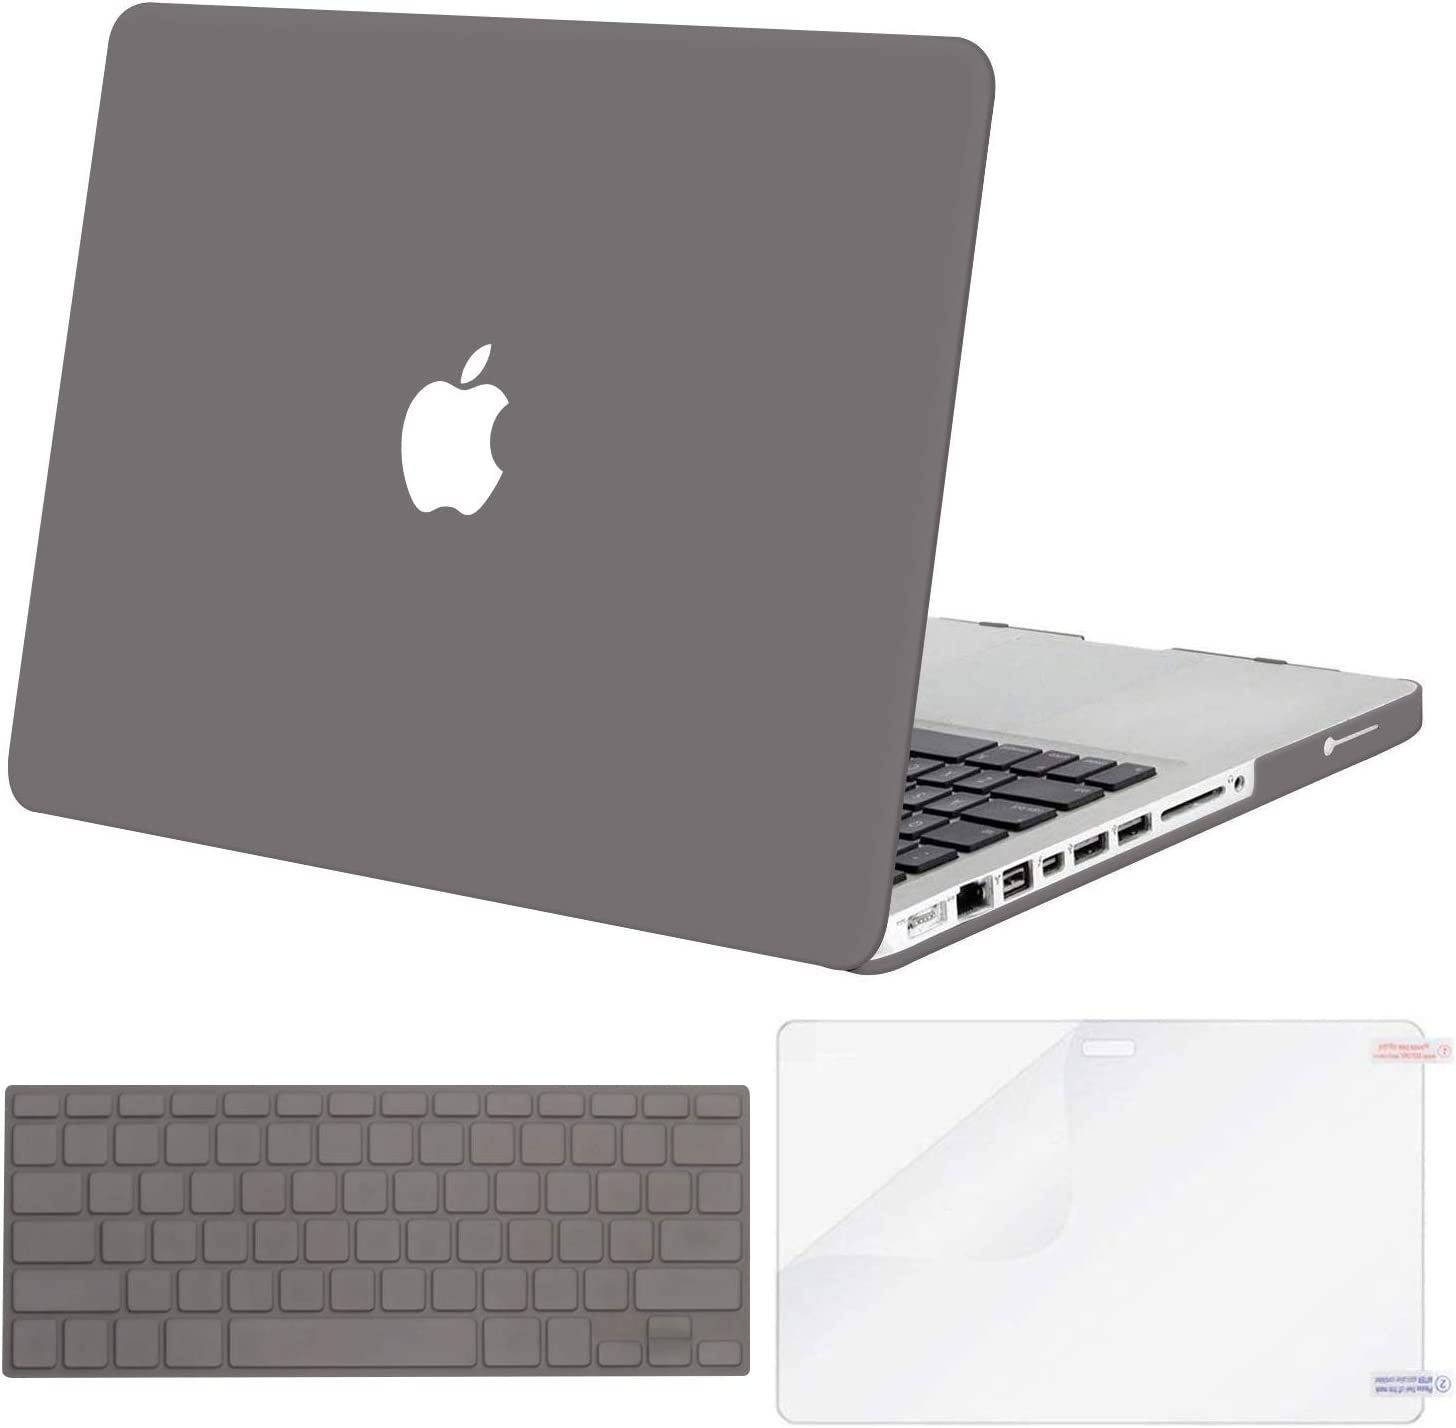 MOSISO Plastic Hard Shell Case & Keyboard Cover & Screen Protector Only Compatible with Old Version MacBook Pro 13 inch (A1278, with CD-ROM), Release Early 2012/2011/2010/2009/2008, Gray